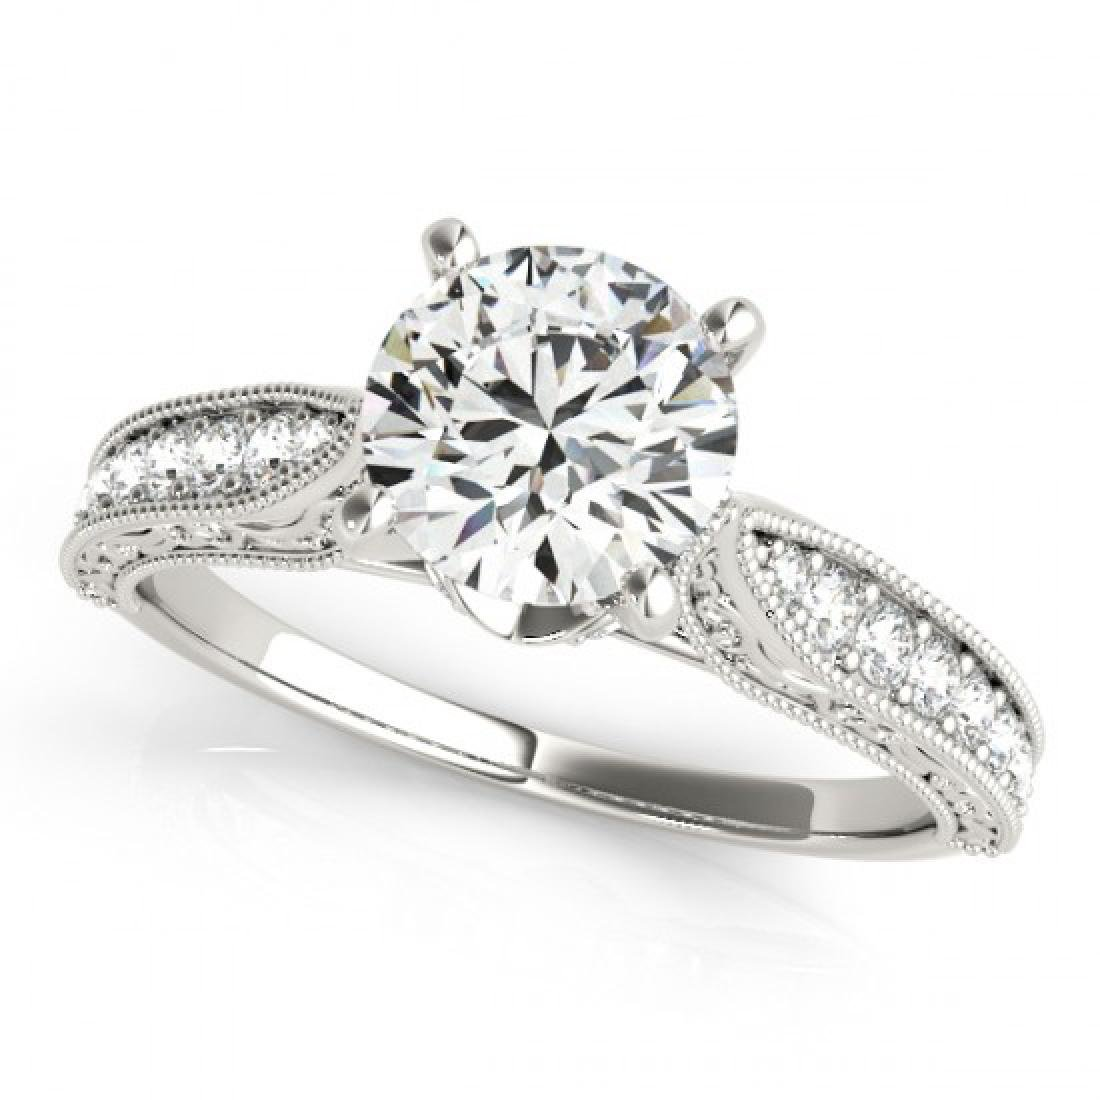 1.21 CTW Certified VS/SI Diamond Solitaire Antique Ring